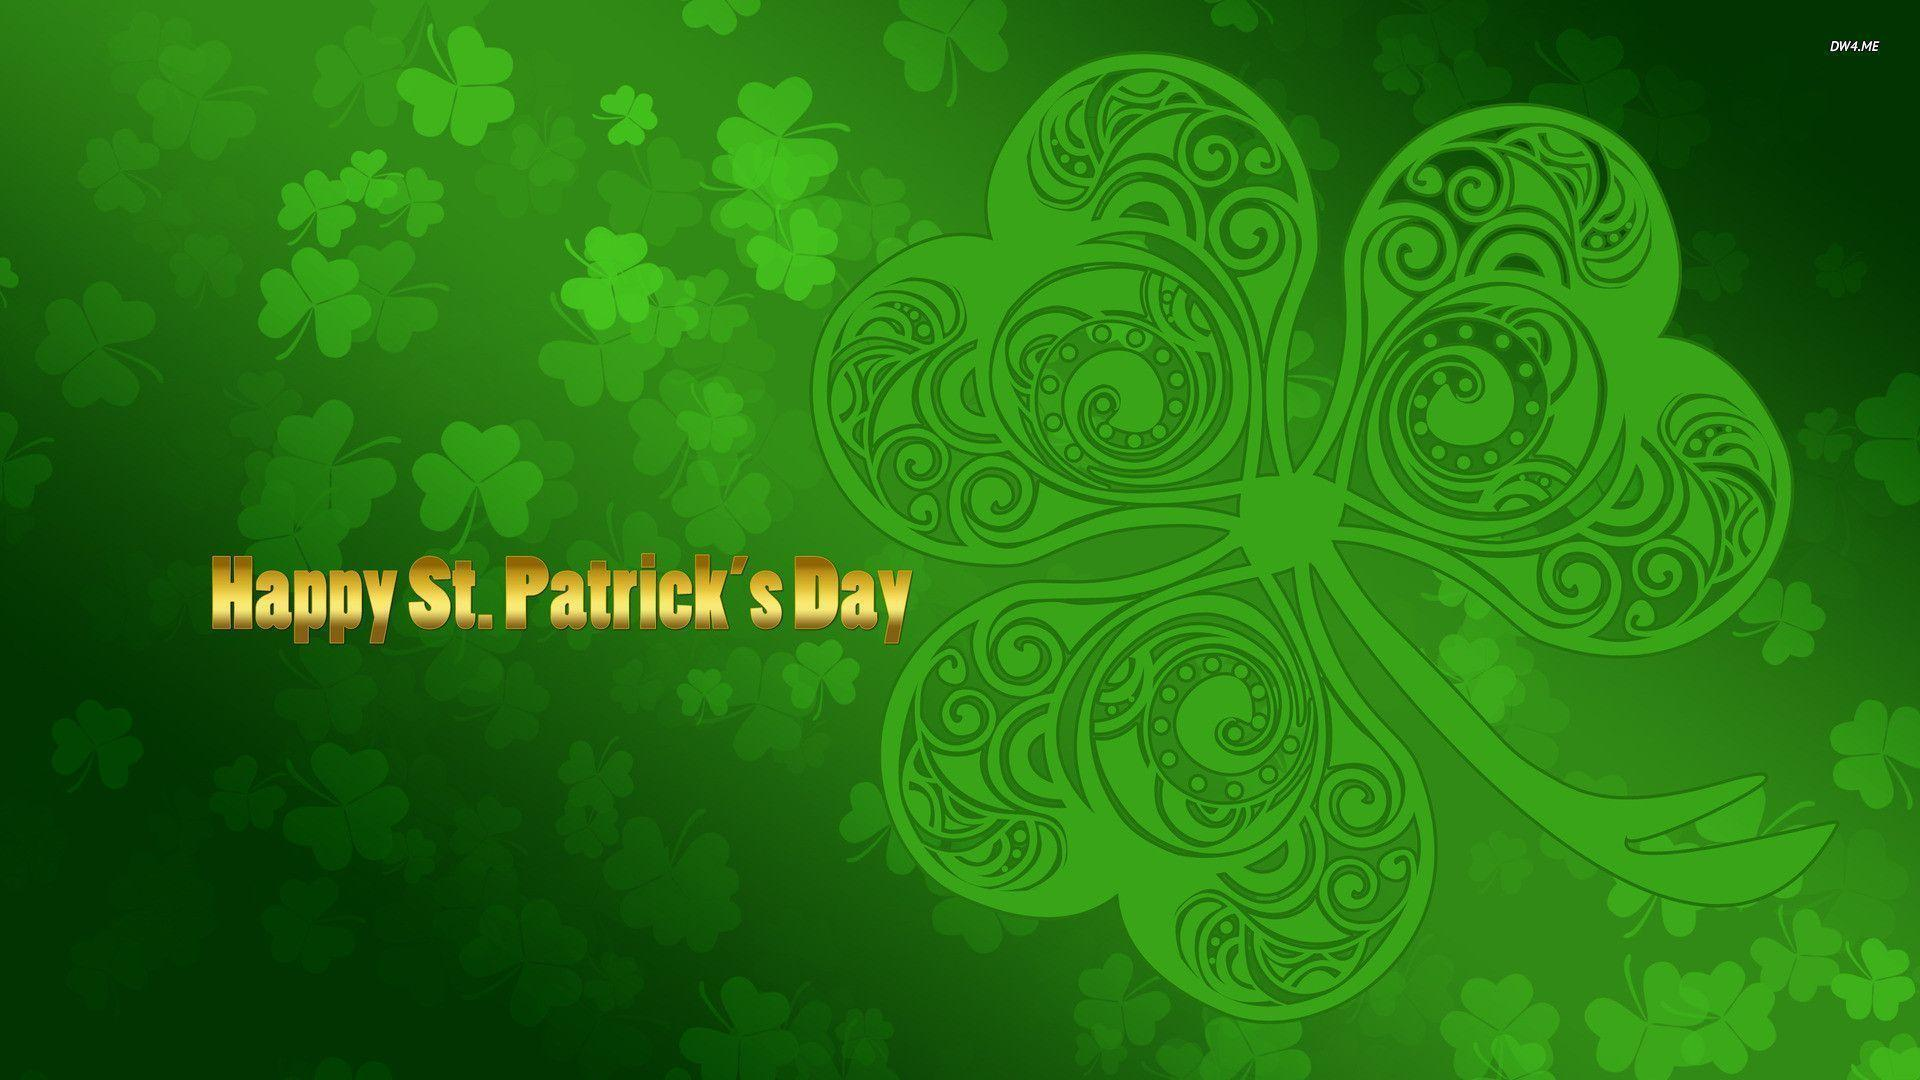 st patrick's day themed wallpaper